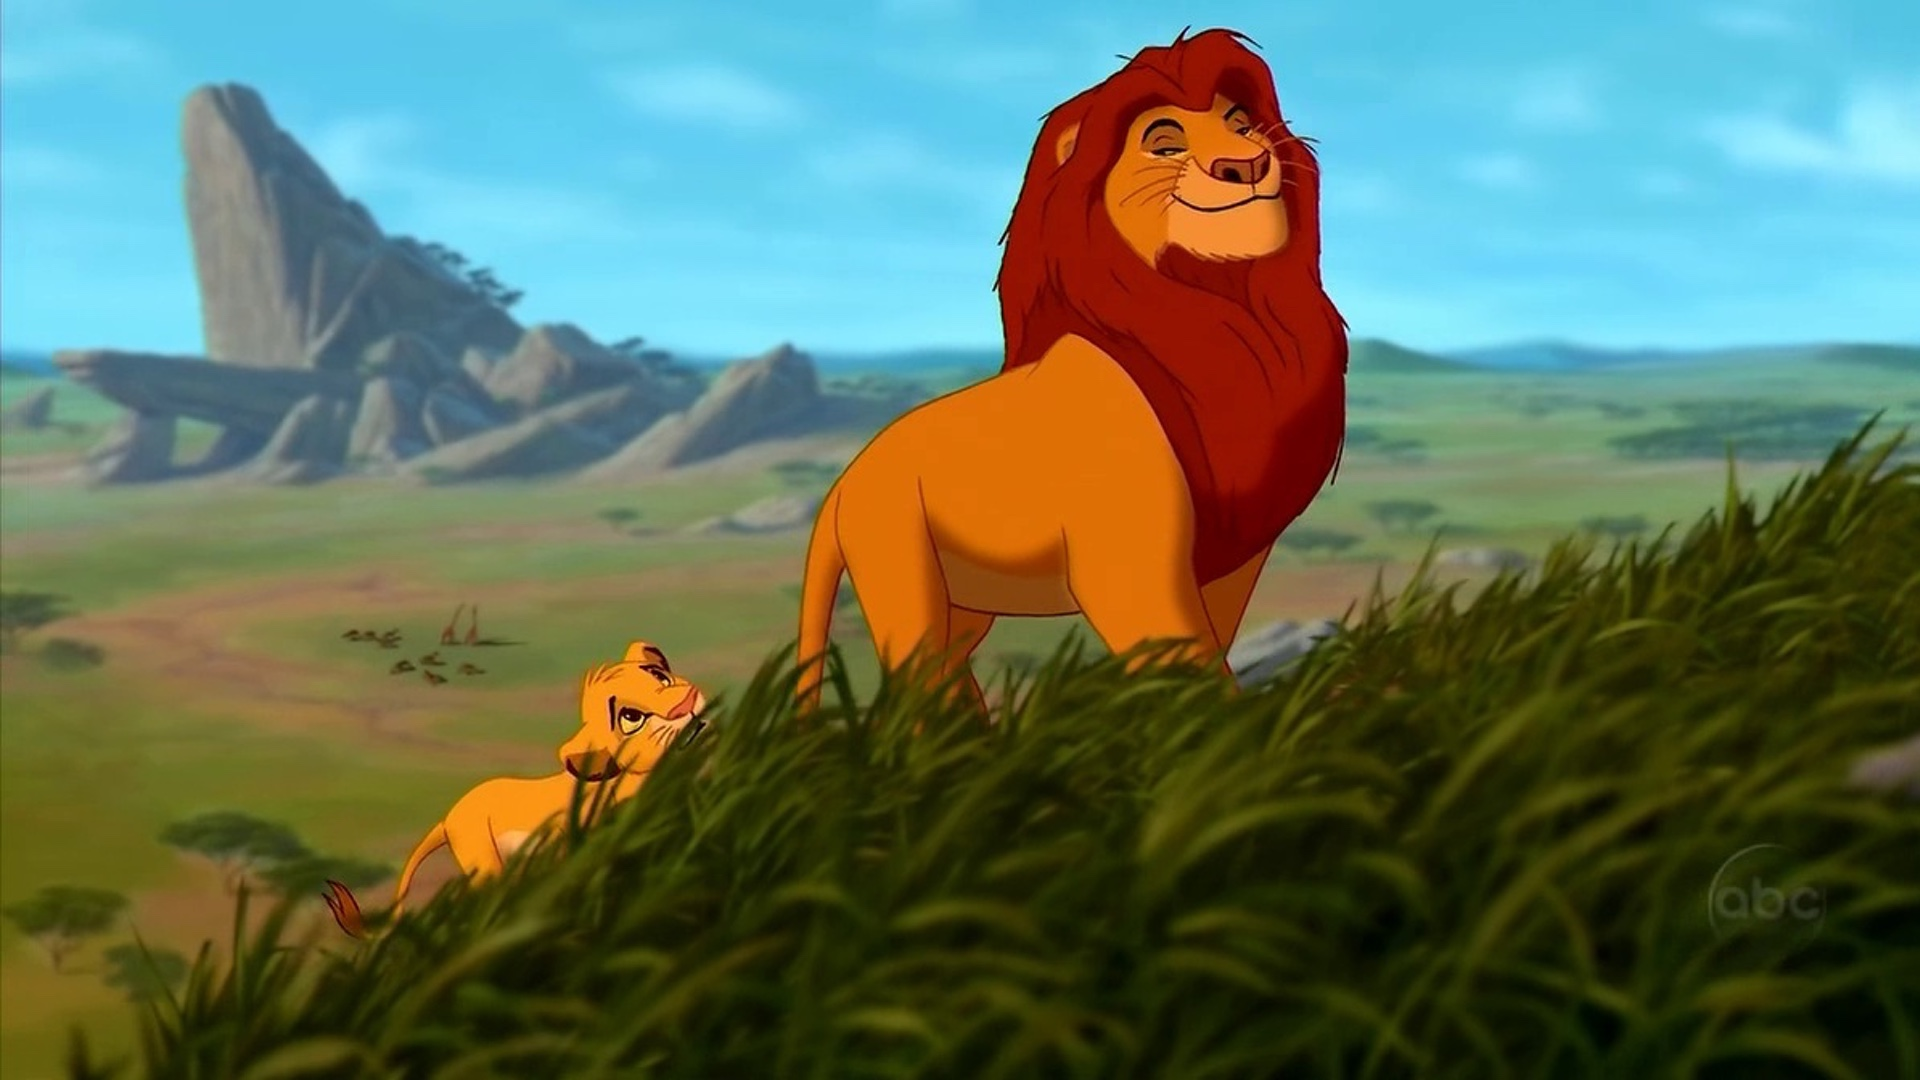 10_lessons_from_the_lion_king